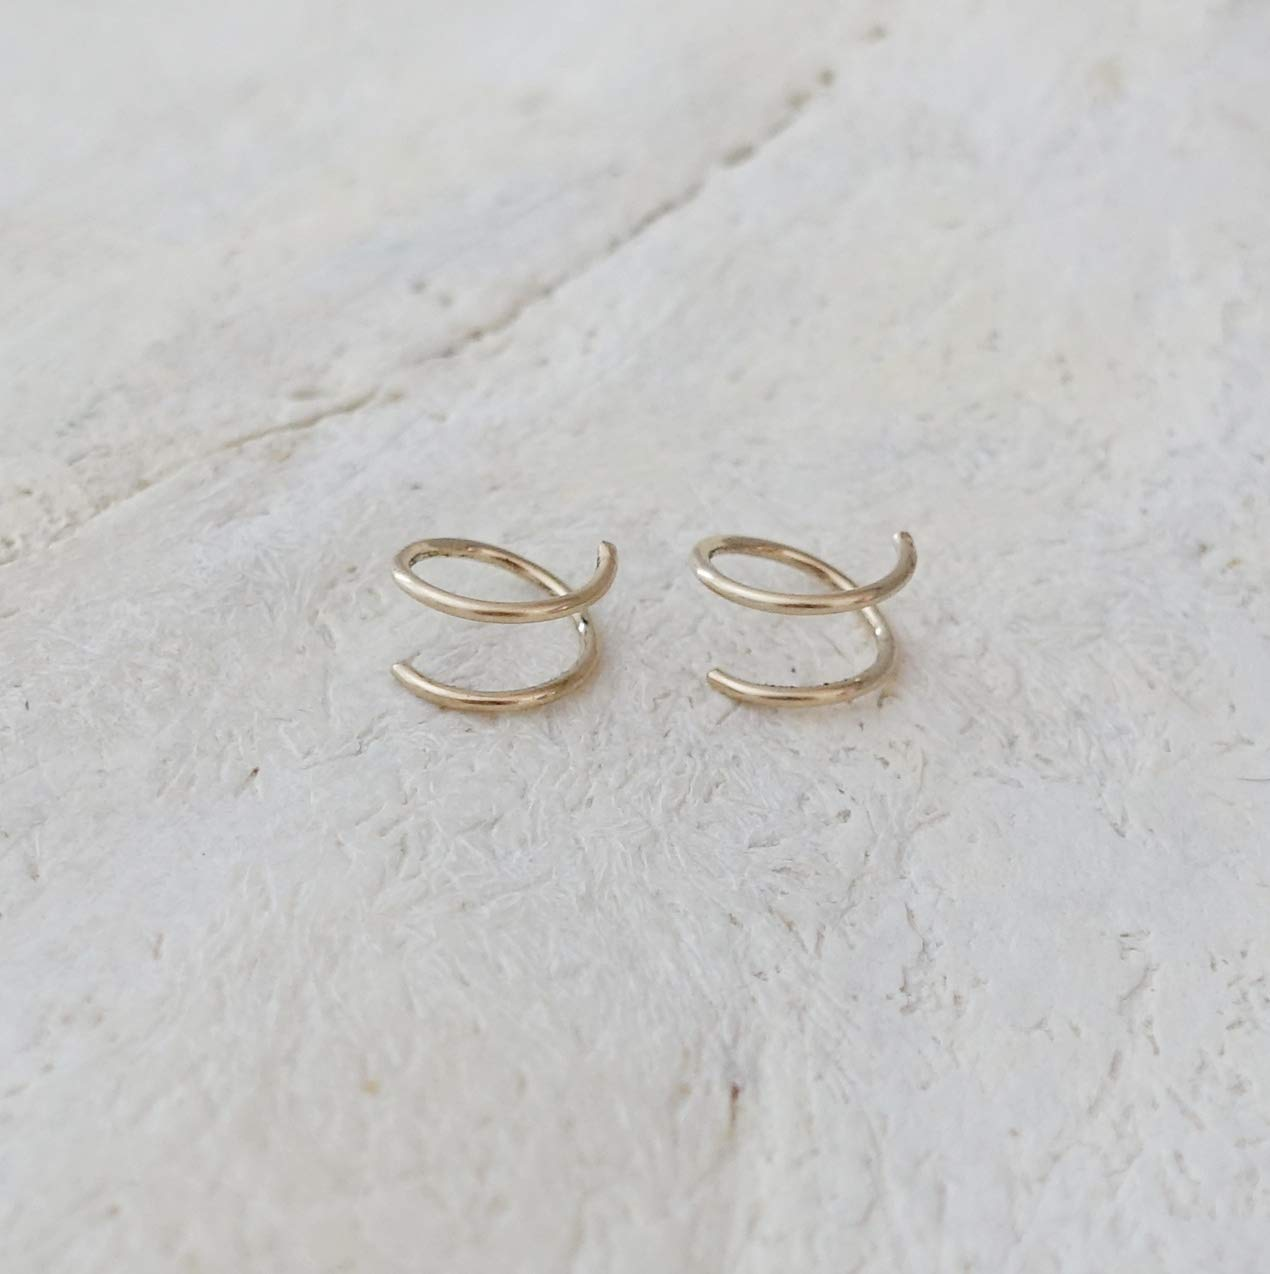 Double Hoop Twist Earrings /• 8 mm Two Piercing Earring /• Tiny Huggie Hoops /• Minimal Spiral Earring /• Double Cartilage or Helix Piercing